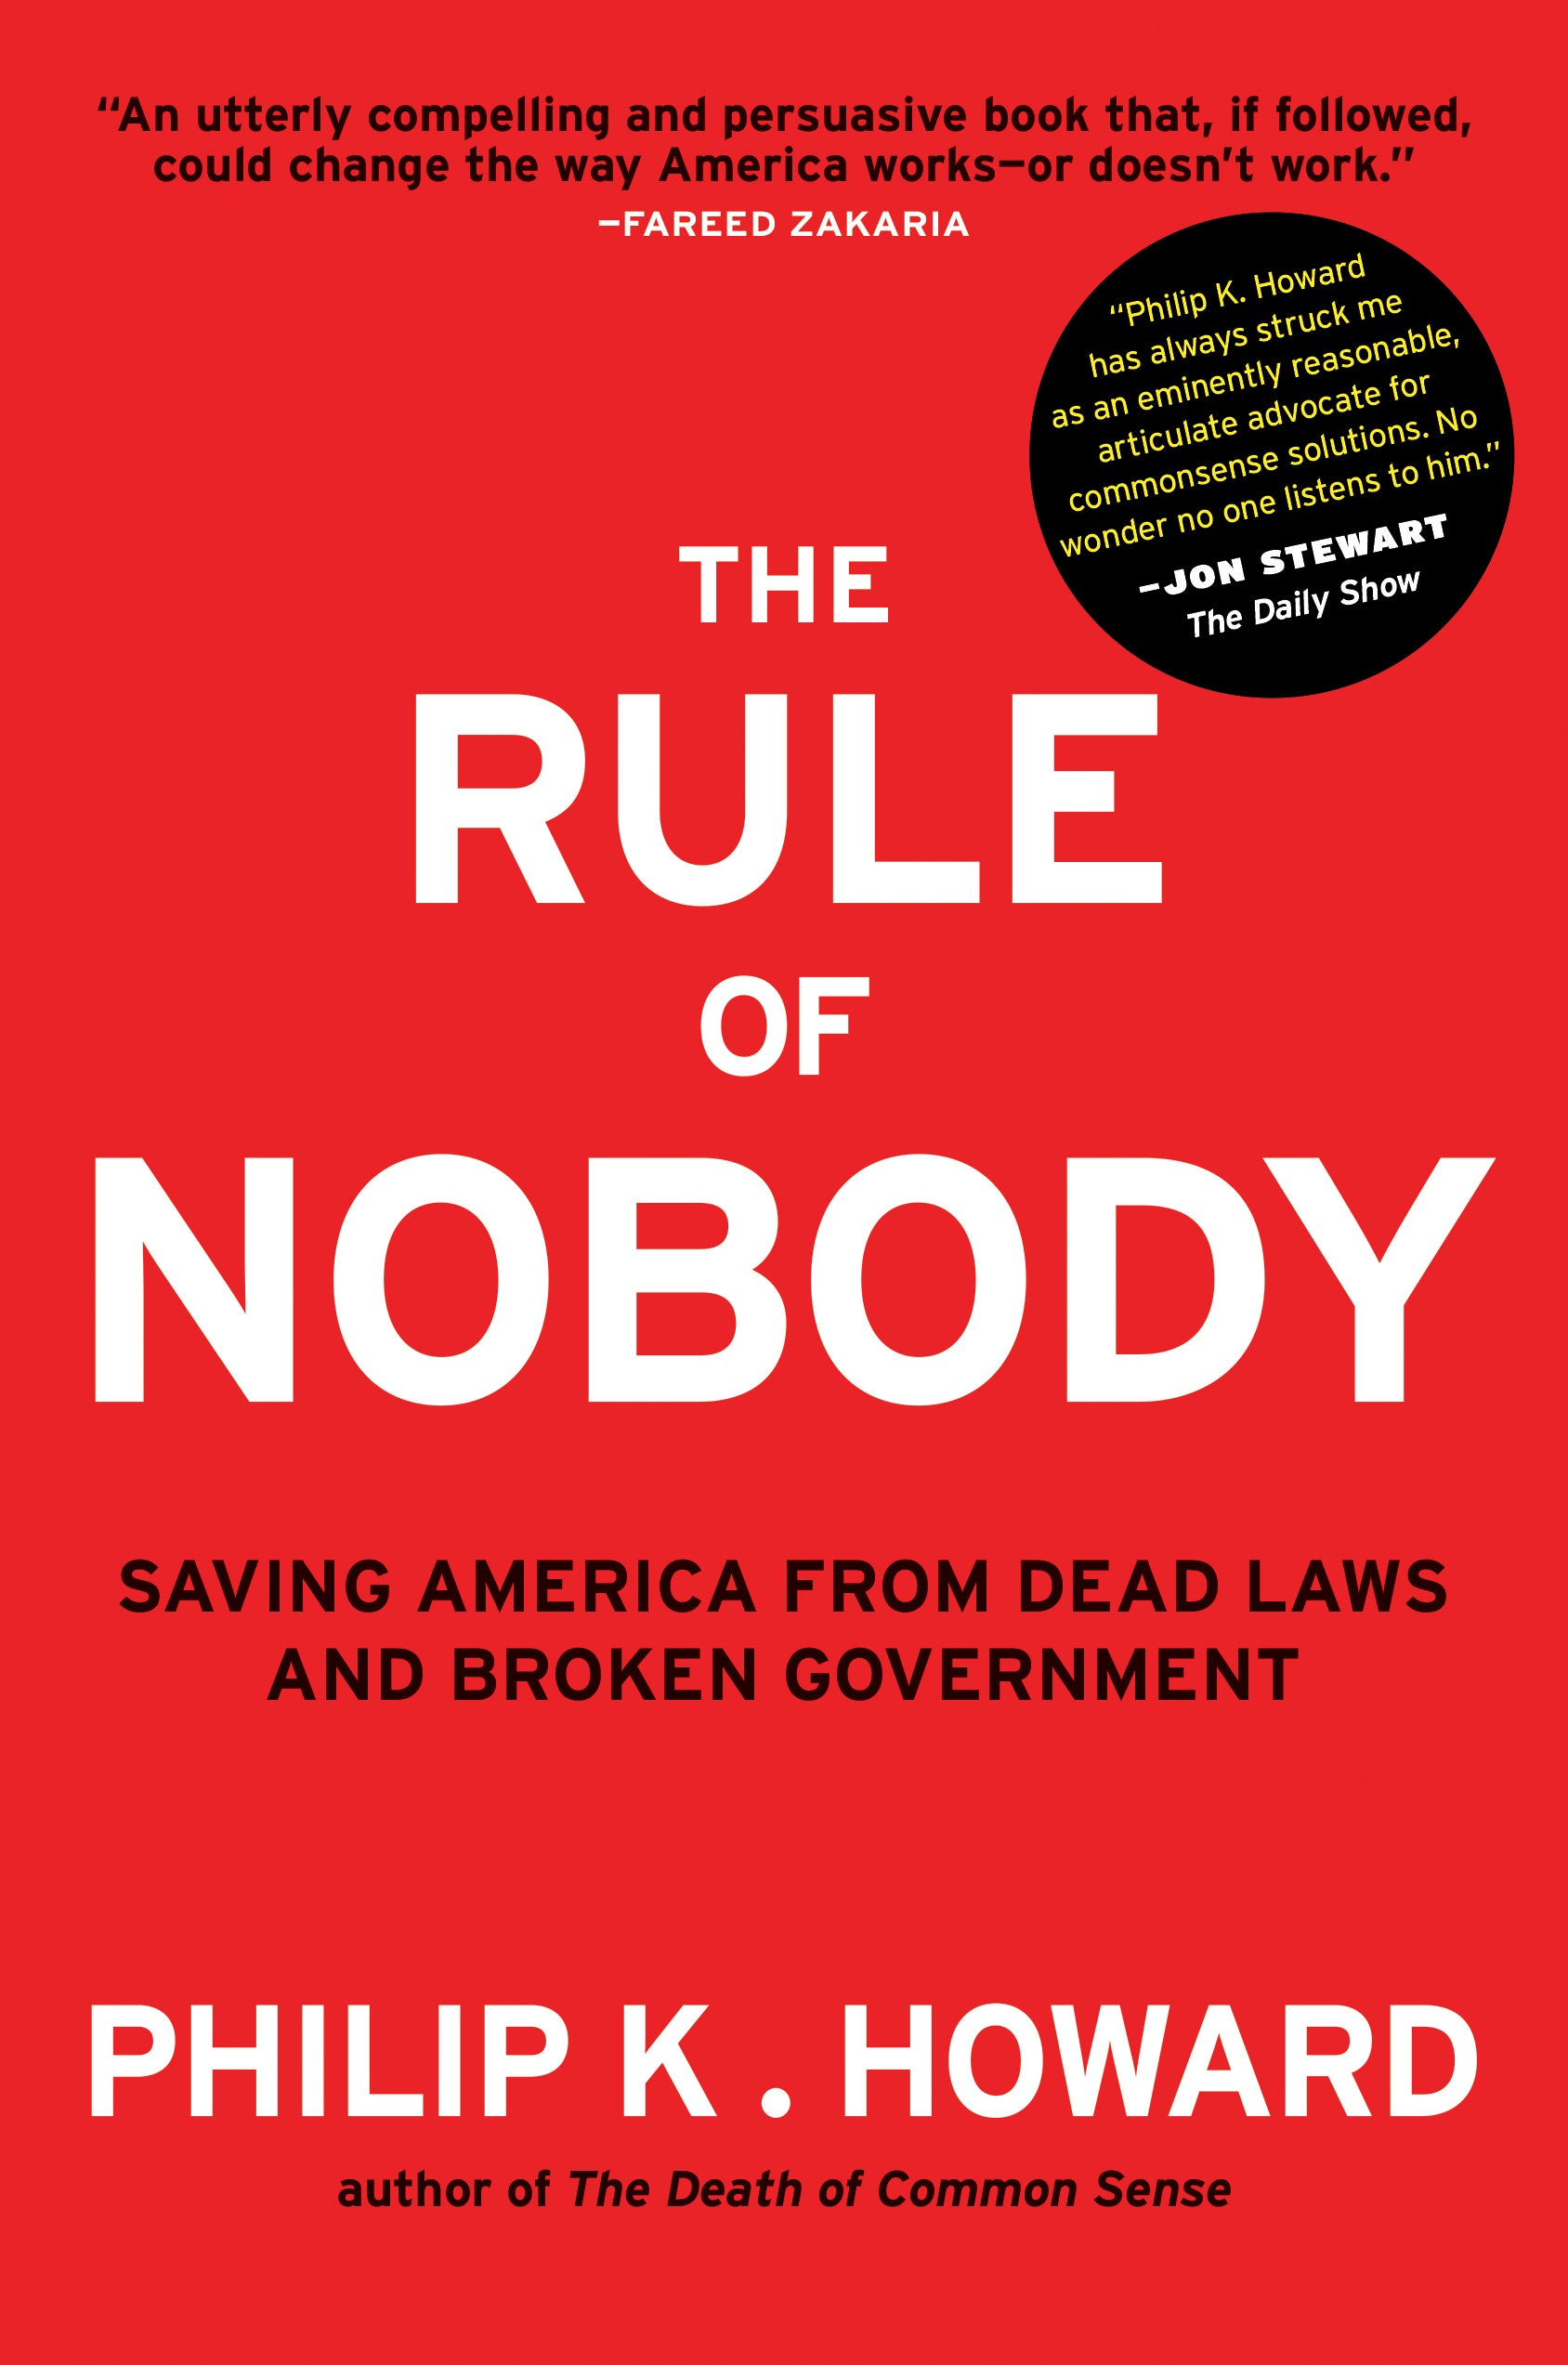 Howard – The Rule of Nobody: Saving America from Dead Laws and Broken Government